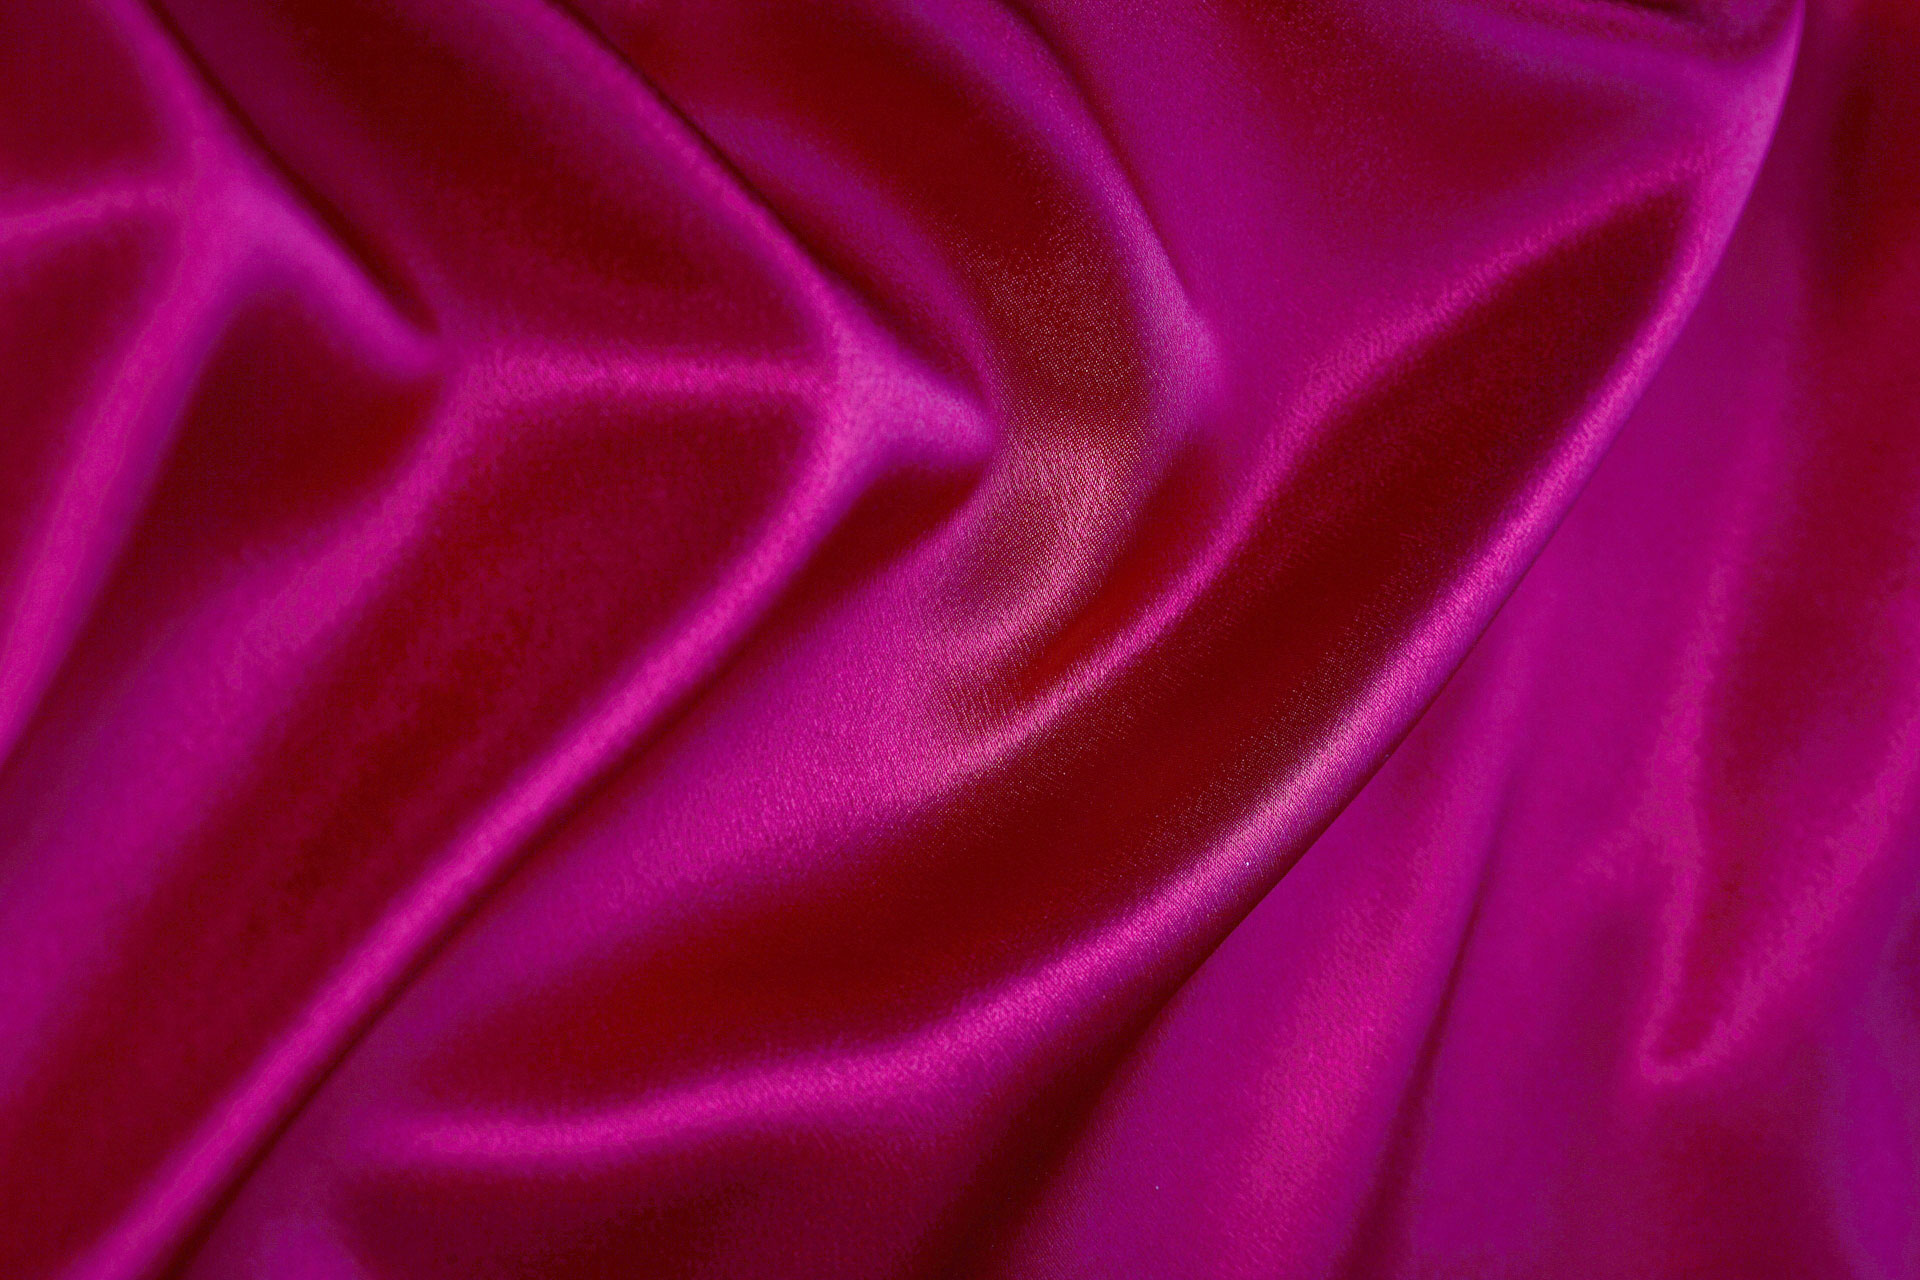 free-textures-silk-fabric-texture-11-texture-online